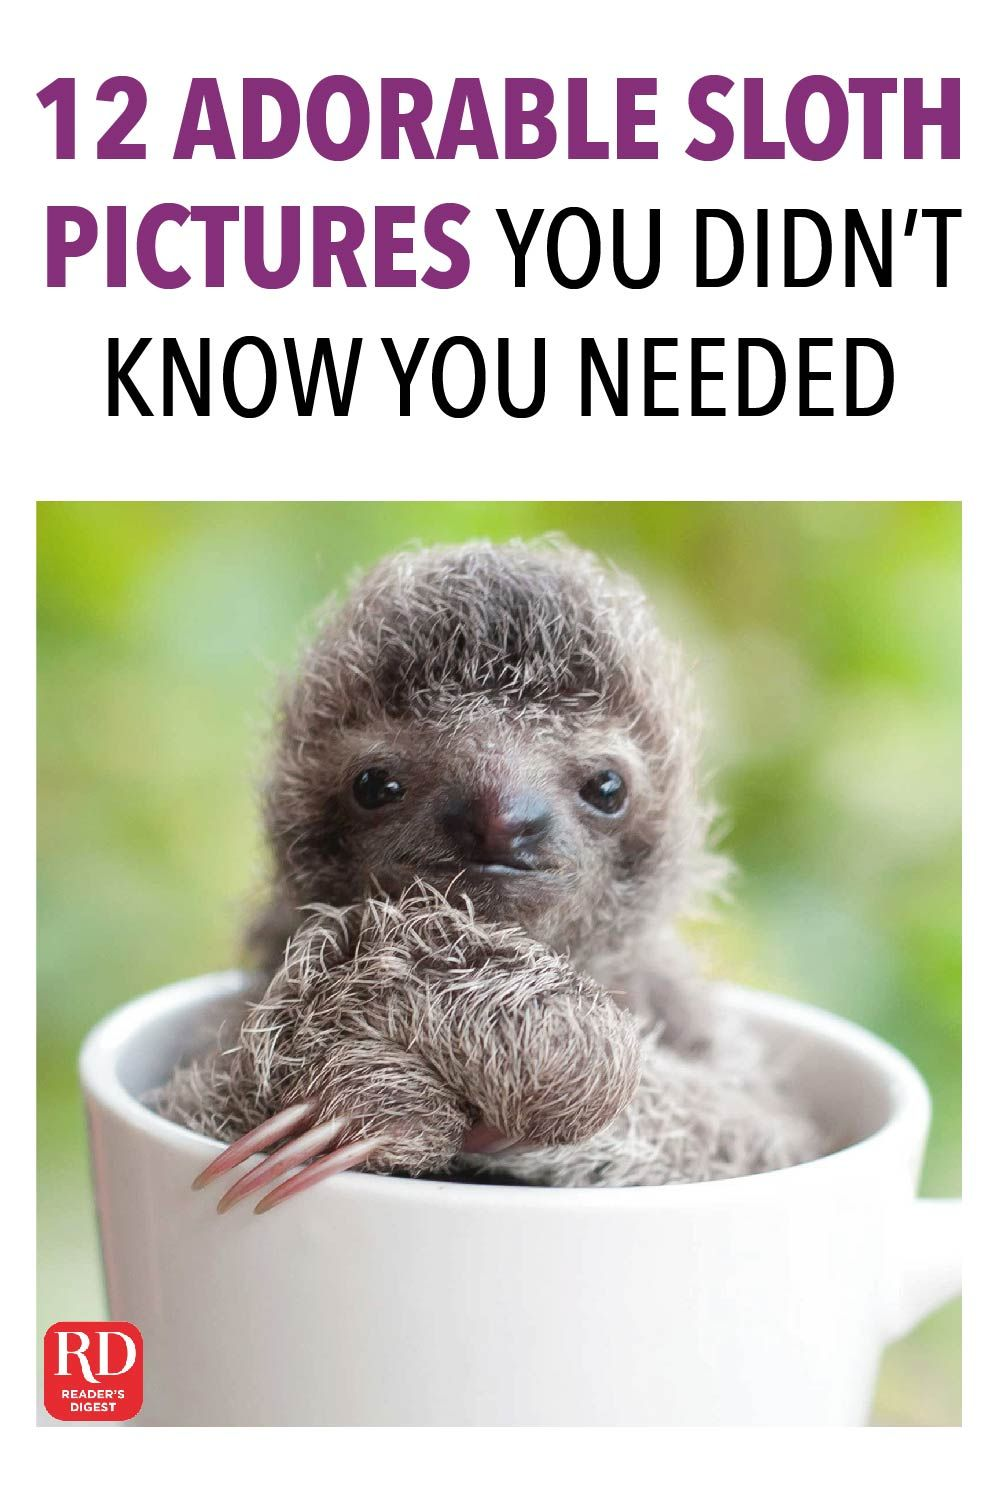 12 adorable sloth pictures you didnt know you needed